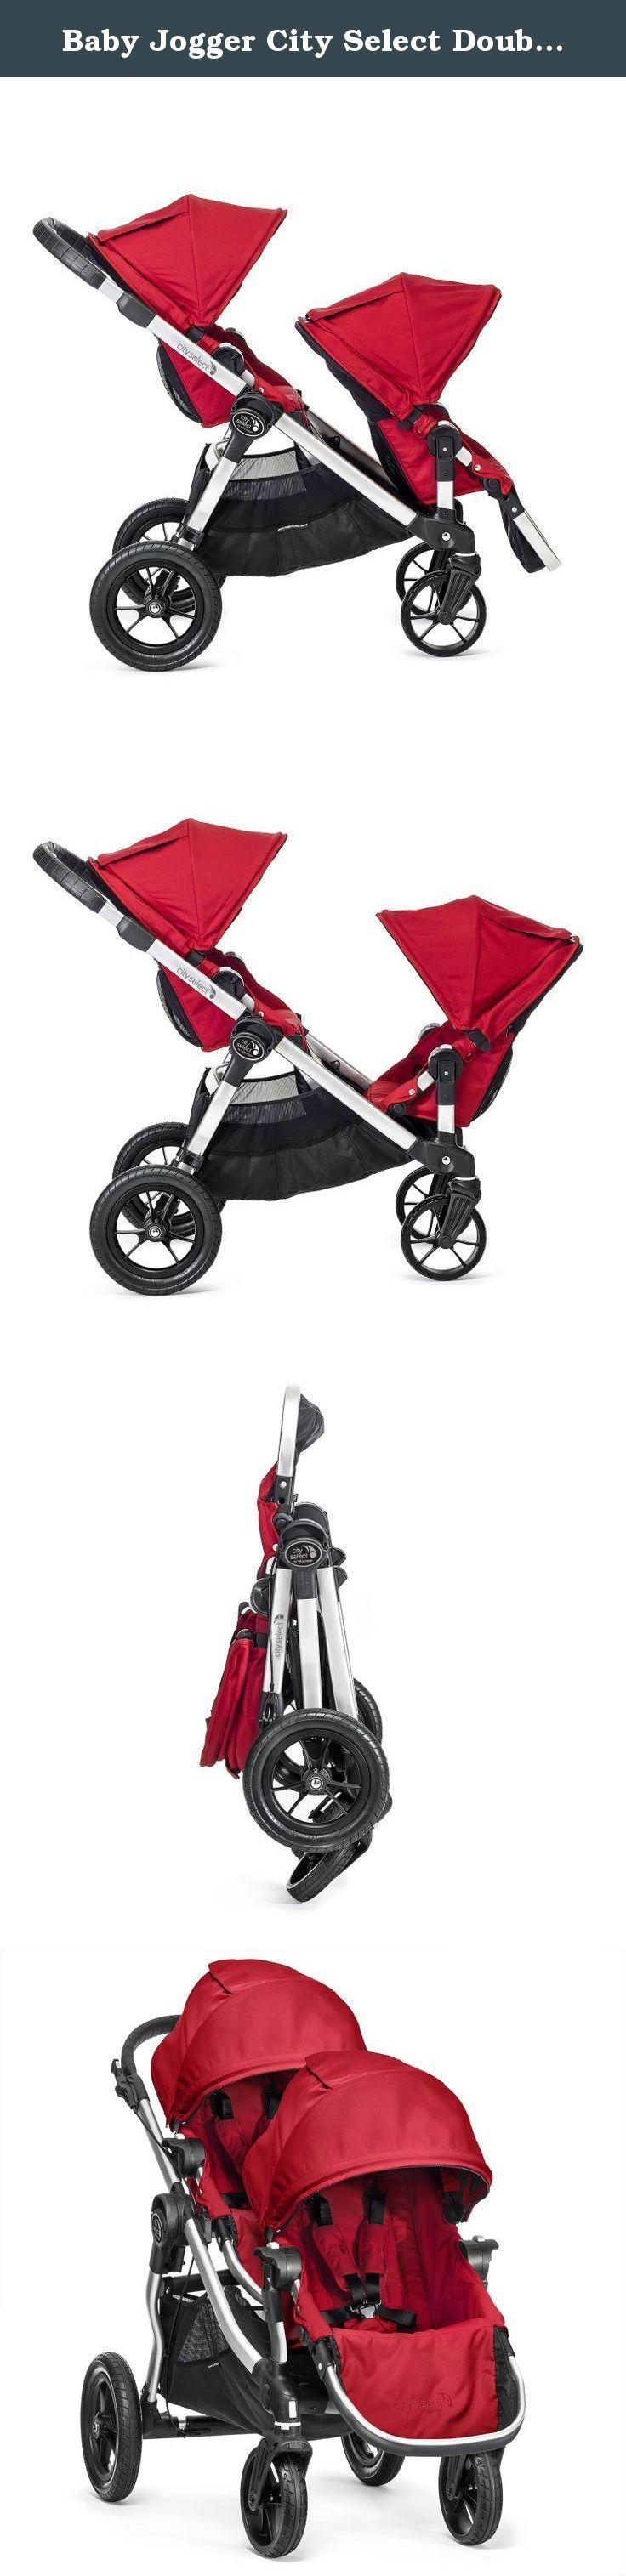 Baby Jogger City Select Double Stroller with Second Seat, Ruby. Whether you're looking for a travel system, a pram, a double stroller, a triple, or just a single, the City Select could be the only stroller you'll ever need. The most versatile stroller on the market today, the City Select was designed to keep your family rolling as it grows from one child to two. Now sold with the Second Seat Kit included, the City Select Double allows parents to mix and match seats, bassinets and car…